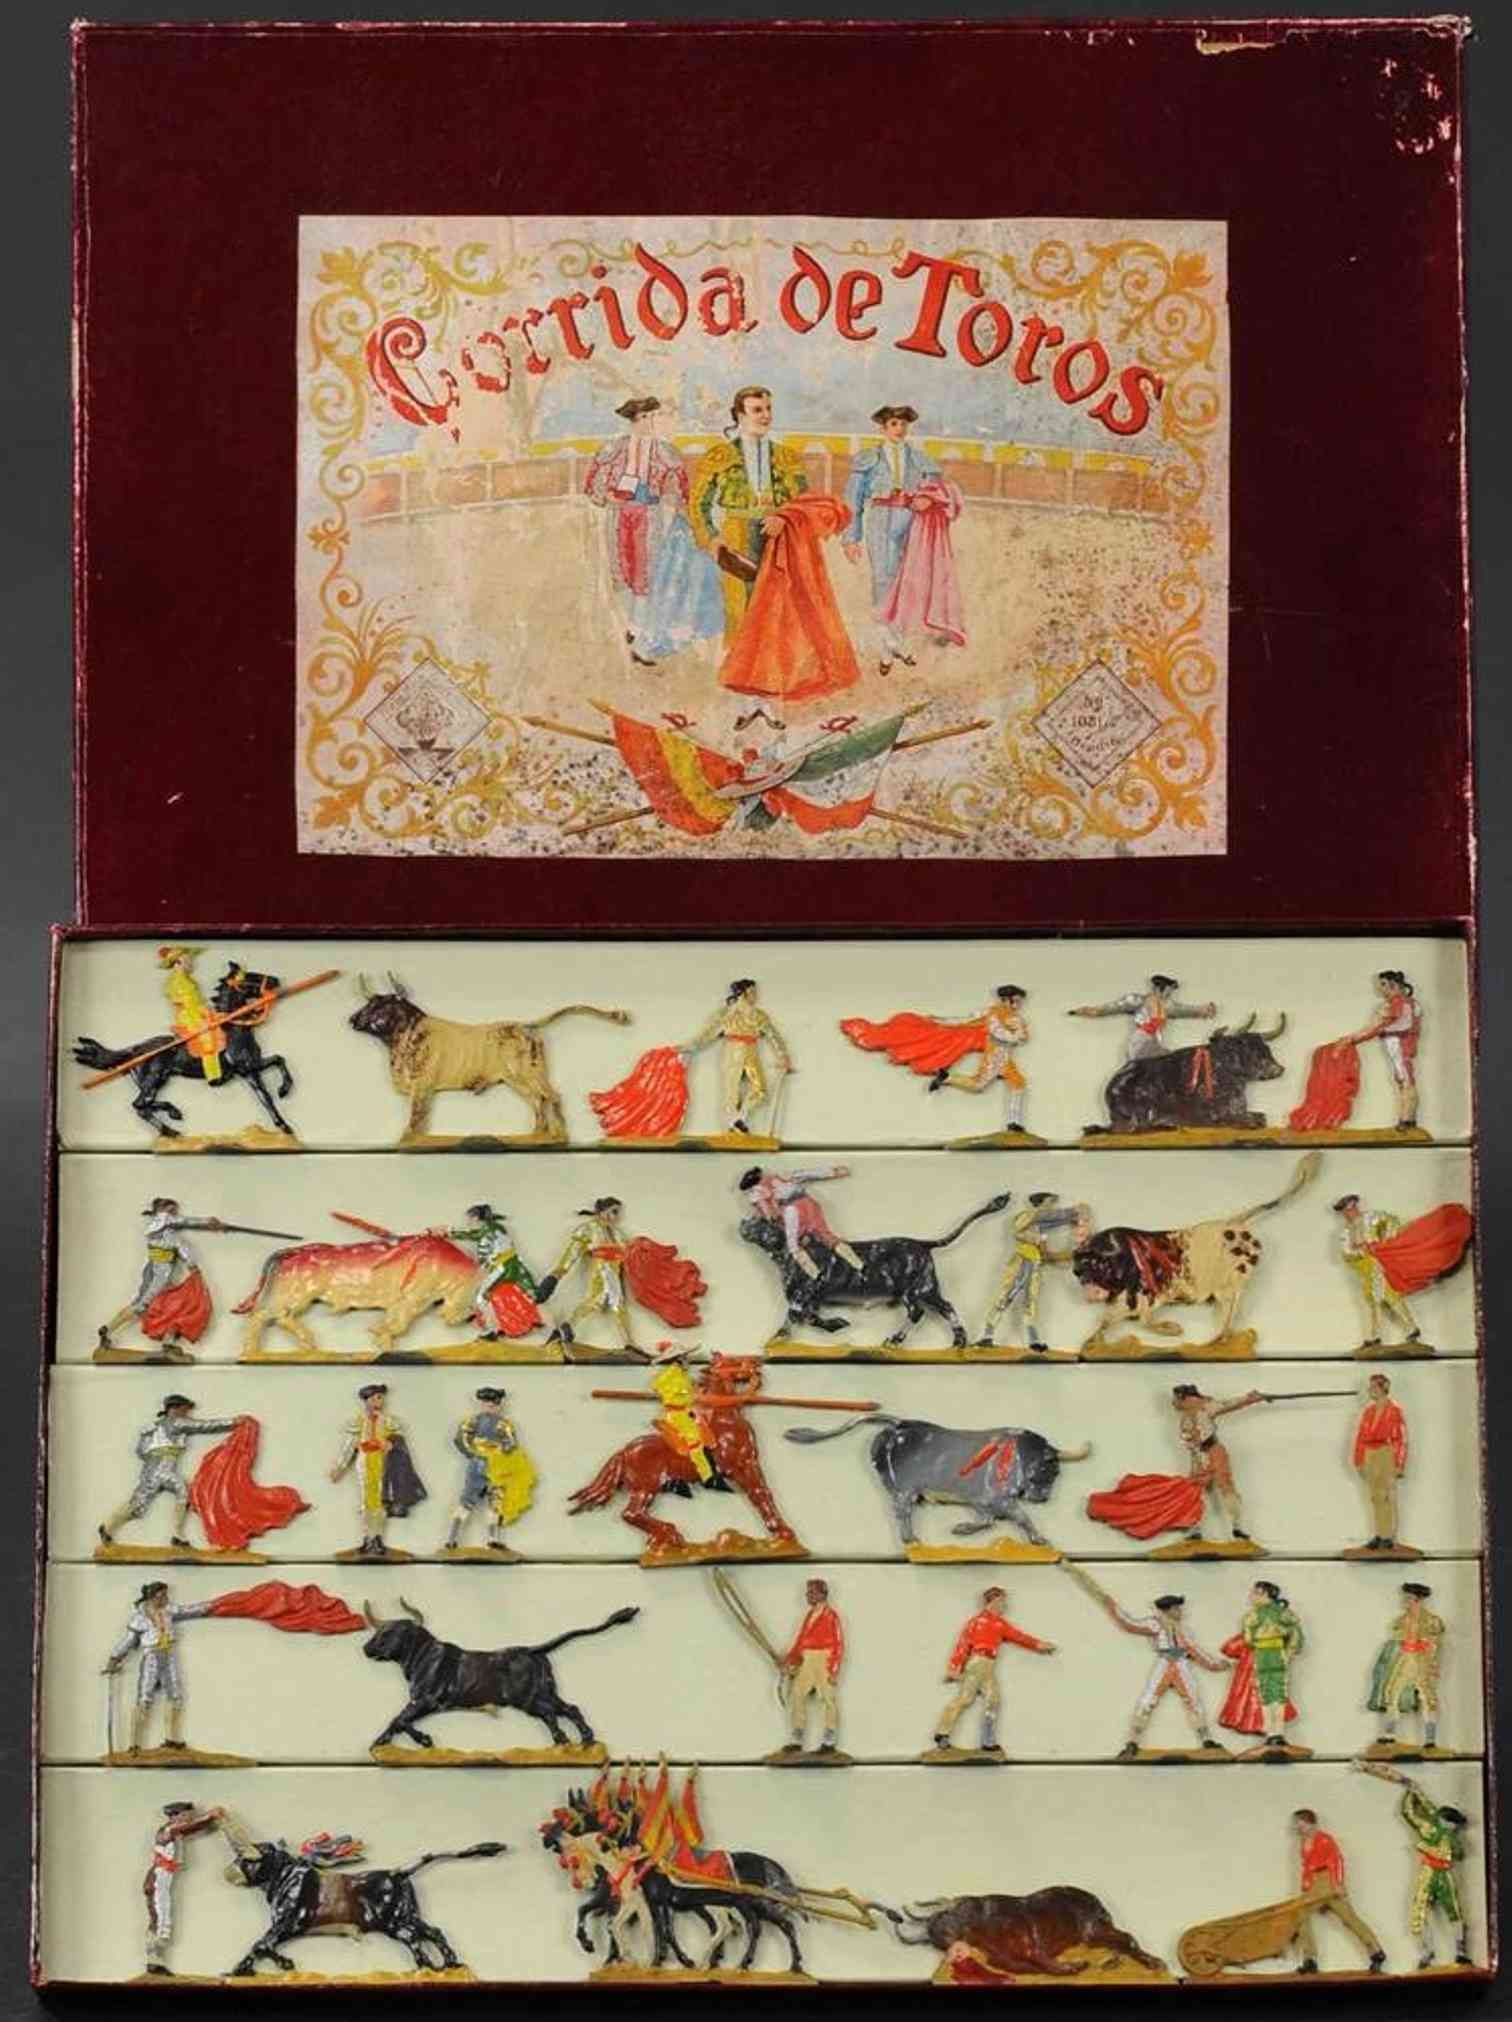 spenkuch gs 1081 tin toy corrrida de toros grand bullfight matadors picadors